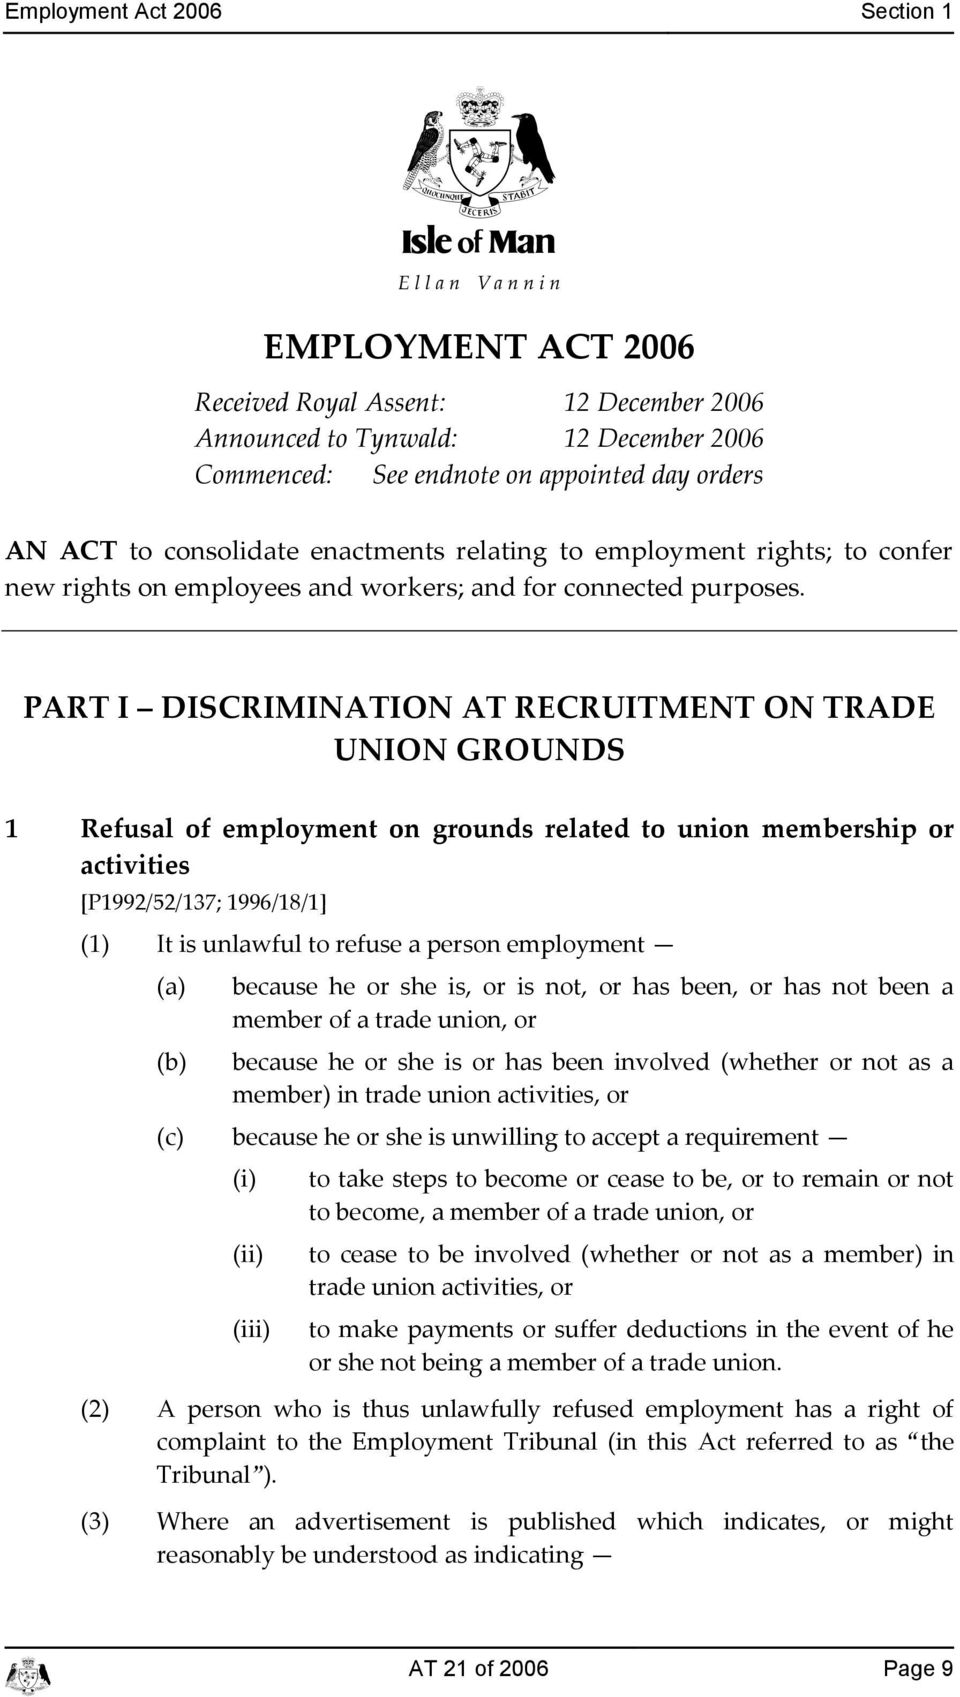 PART I DISCRIMINATION AT RECRUITMENT ON TRADE UNION GROUNDS 1 Refusal of employment on grounds related to union membership or ativities [P1992/52/137; 1996/18/1] (1) It is unlawful to refuse a person